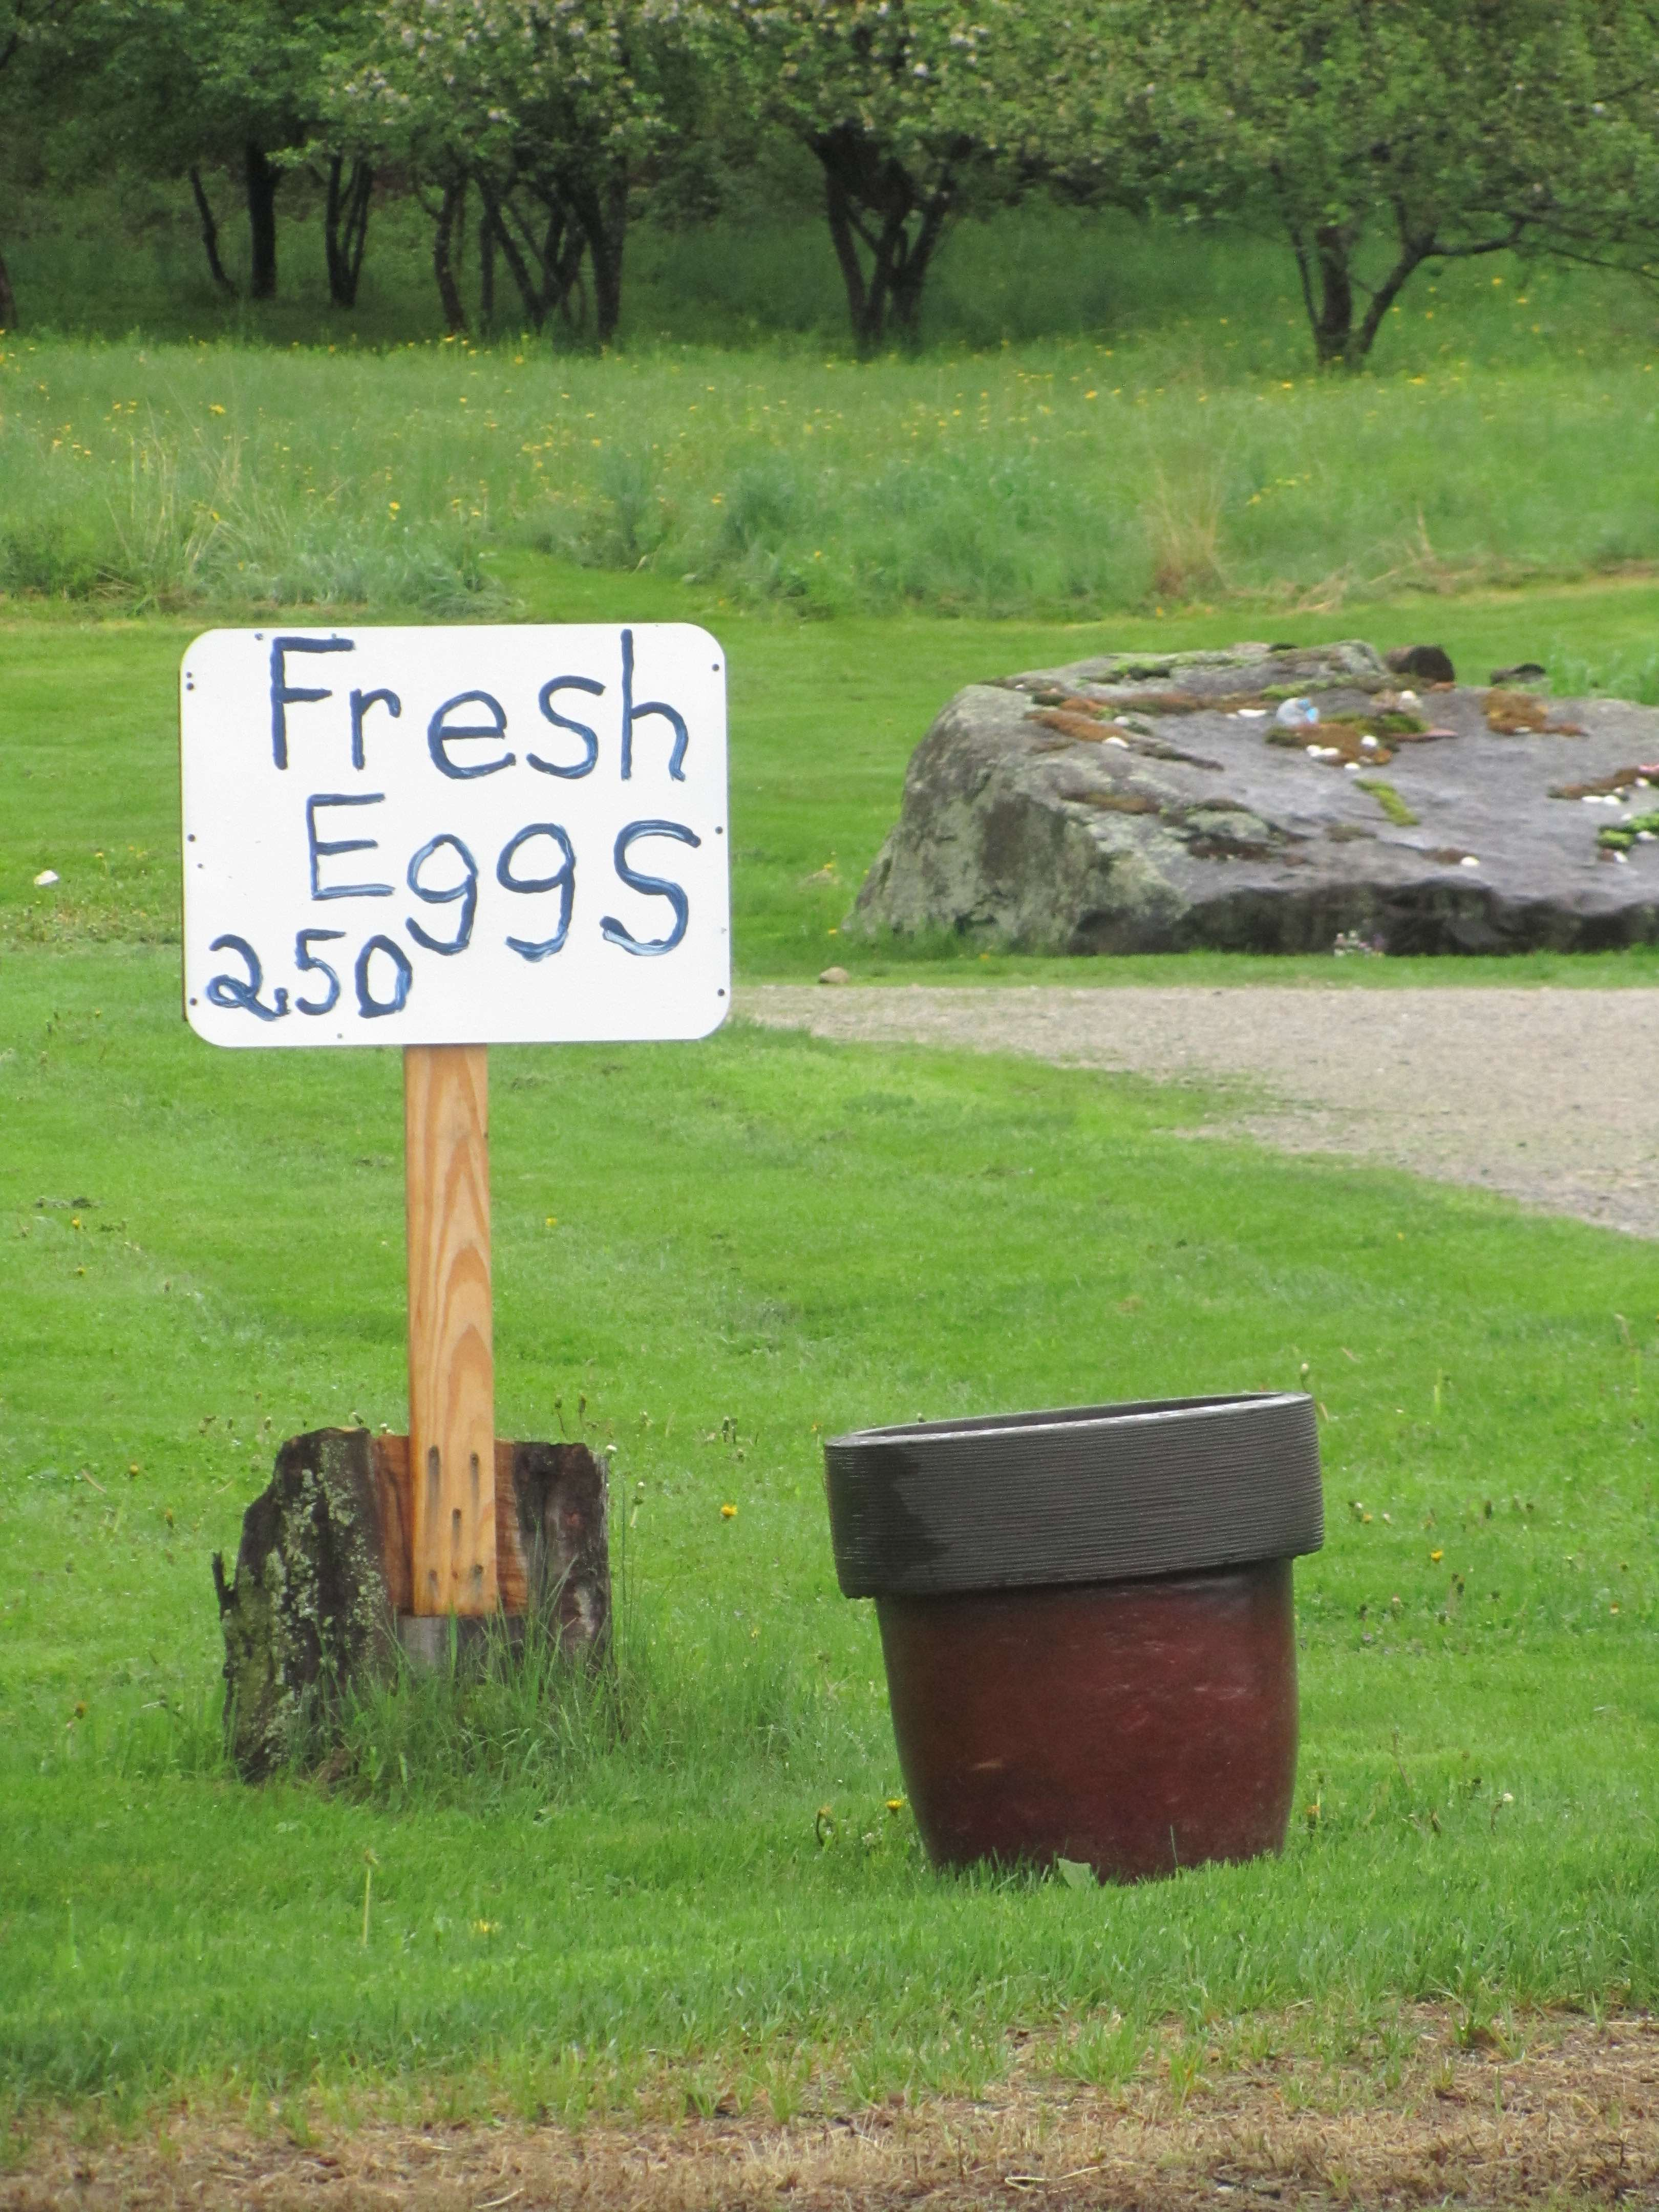 Fresh Eggs $2.50 Sign at small chicken farm